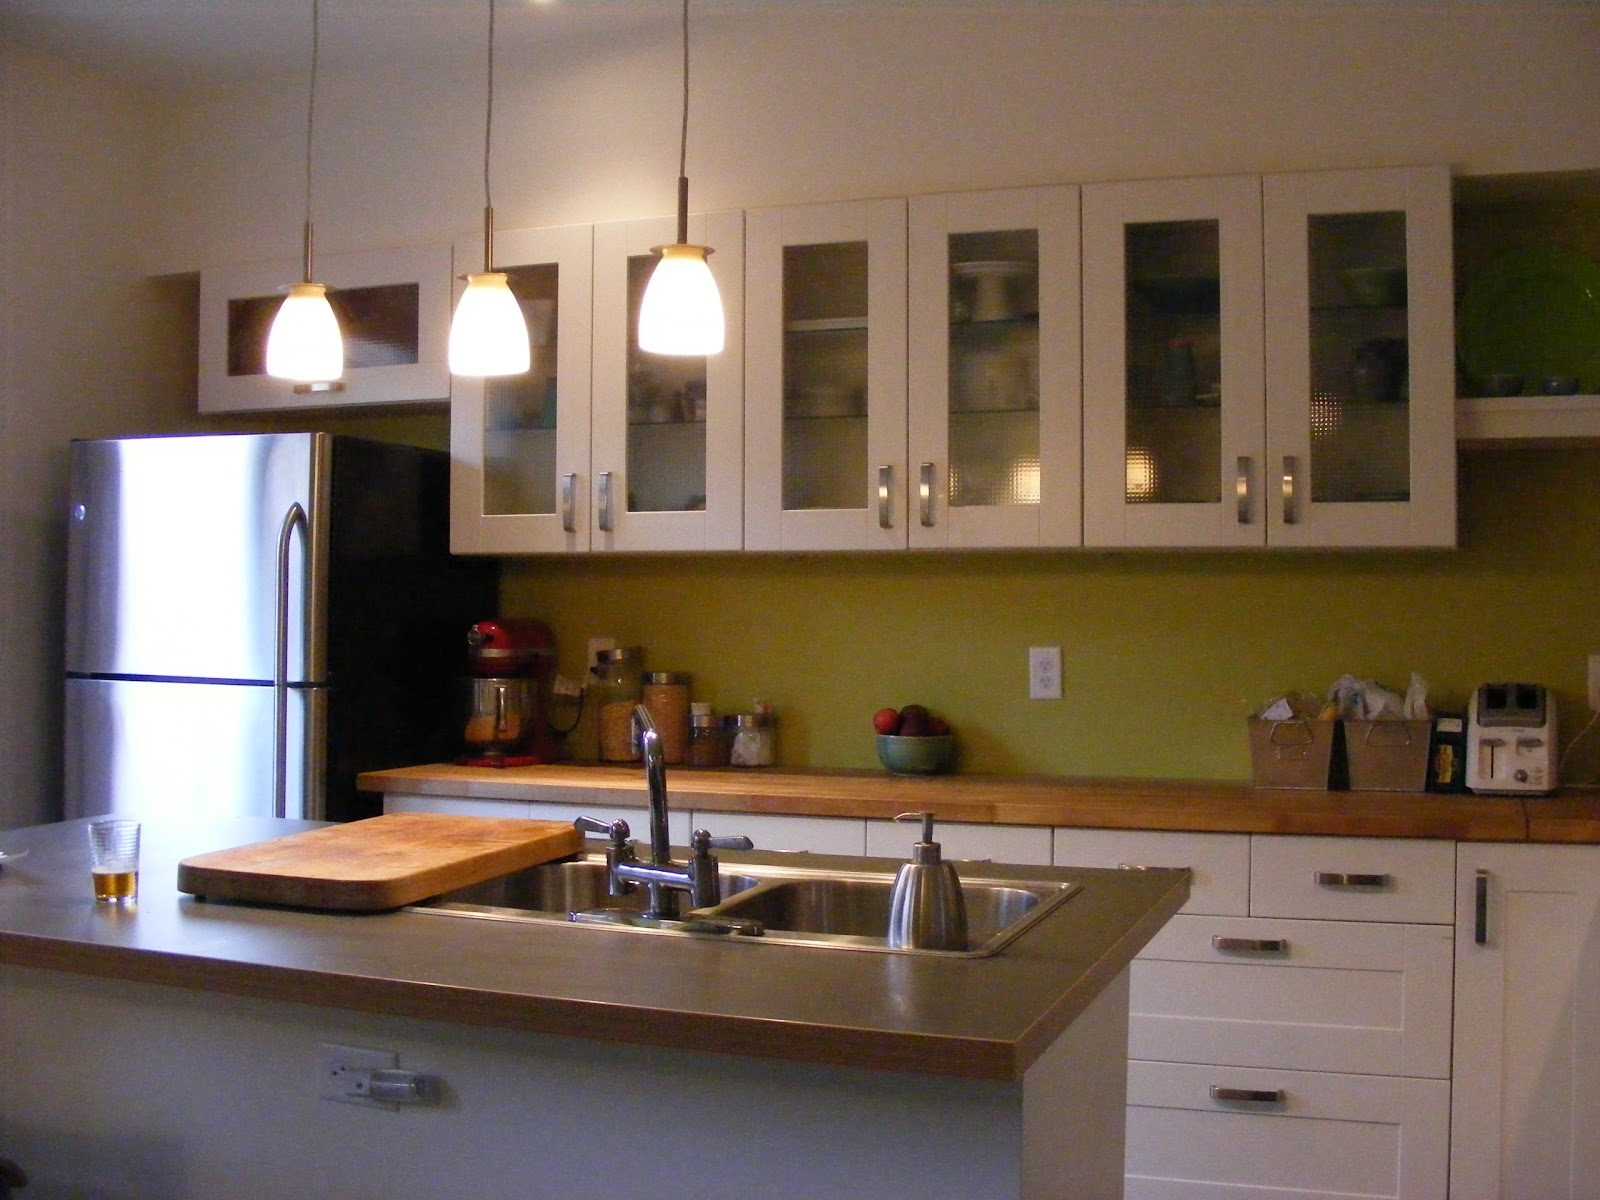 Our old halifax house buying an ikea kitchen - Small kitchens ikea ...